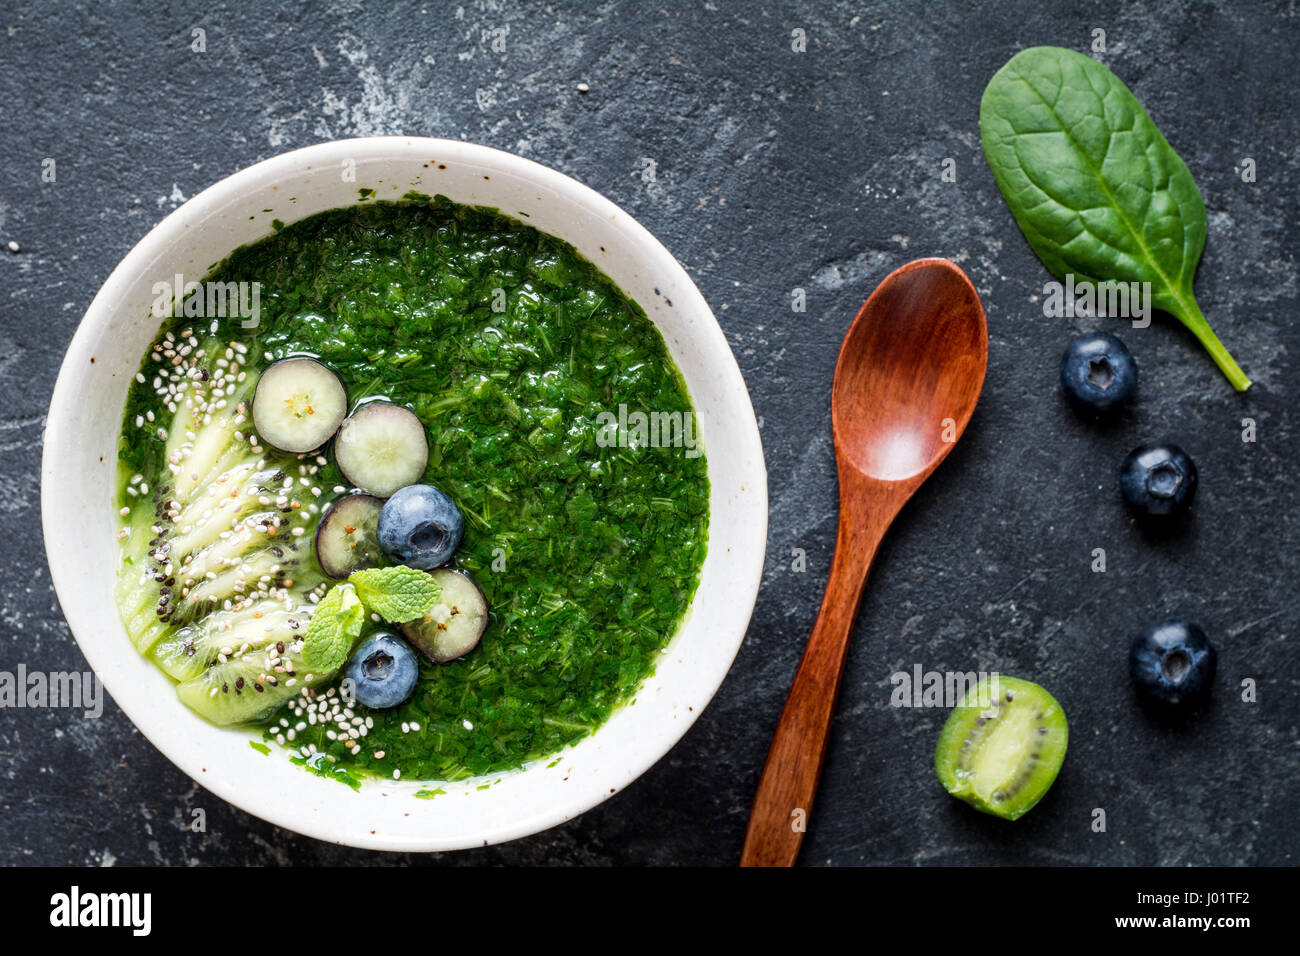 Green spinach and kale smoothie with chia seeds, kiwi and blueberries on slate background. Top view, closeup - Stock Image